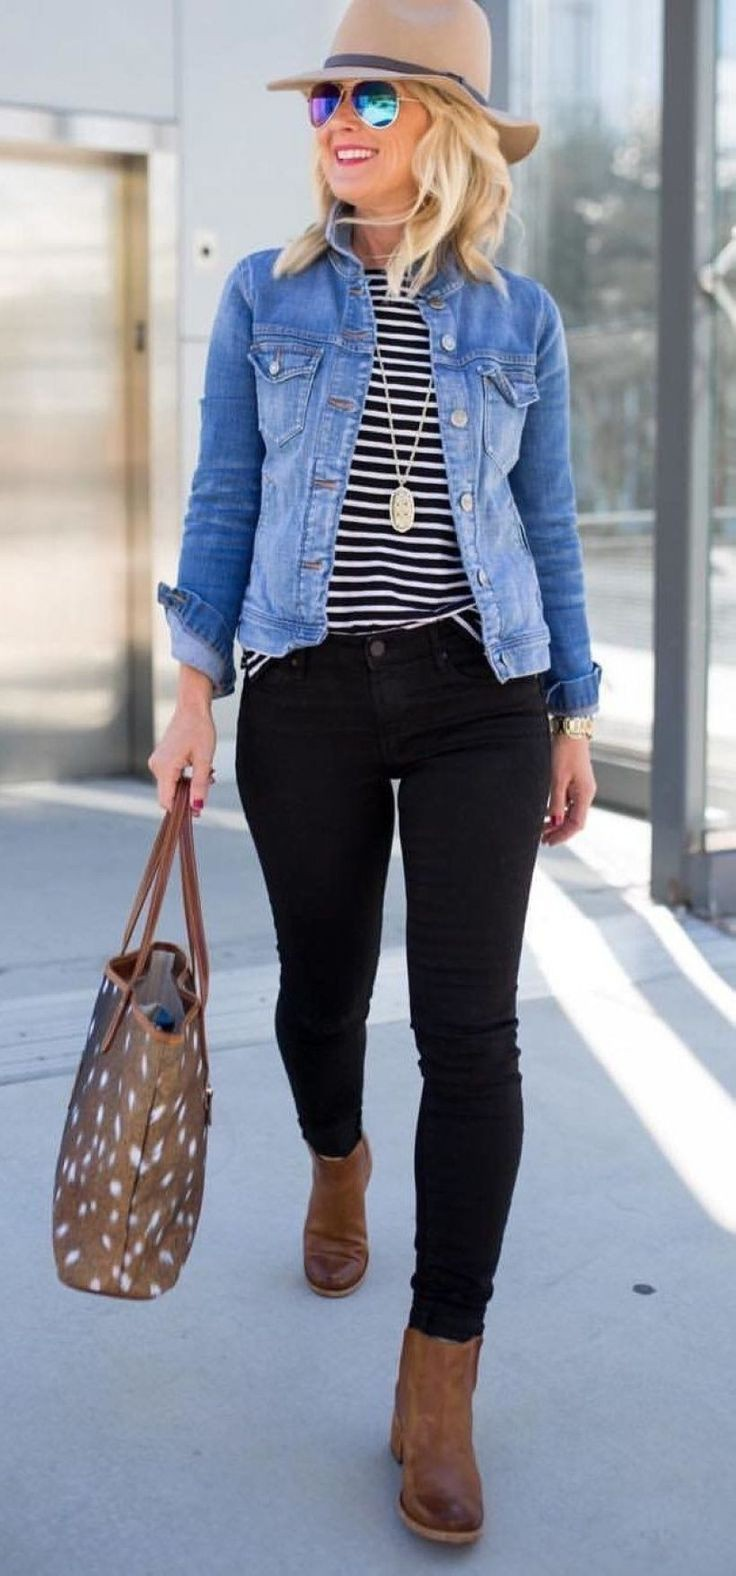 Denim Jacket Black, Ralph Lauren Corporation